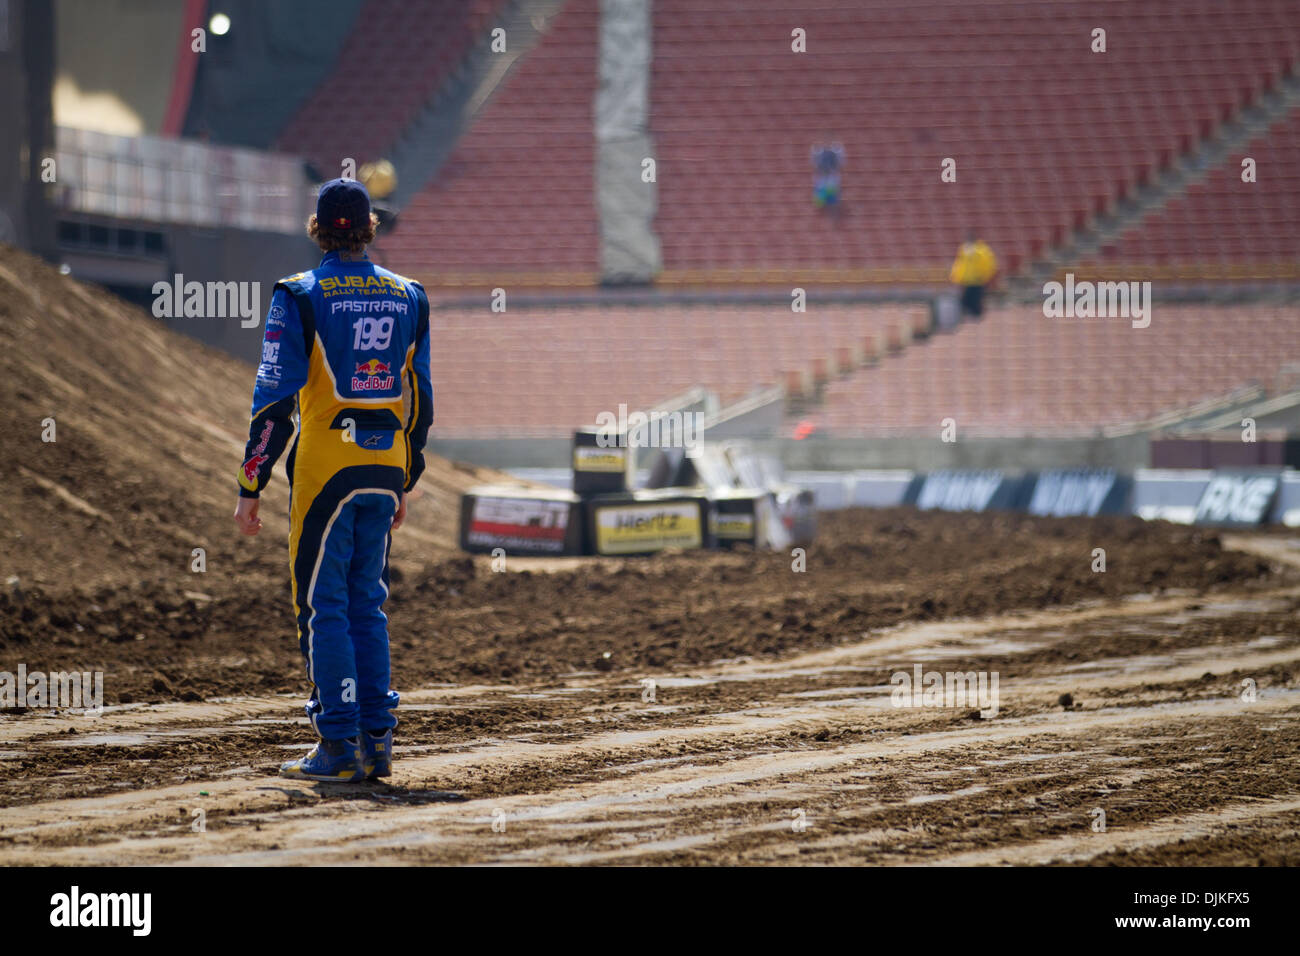 Sep. 05, 2010 - Los Angeles, CA, U.S - 31 July 2010:  Travis Pastrana (199) shows his dedication and was the only driver to walk the track when it was re-graded after qualifying.  However, it wasn't enough and Travis failed to make it past the quarter-finals in Rally Car at the X Games in Los Angeles, CA. (Credit Image: © Josh Chapel/Southcreek Global/ZUMApress.com) - Stock Image